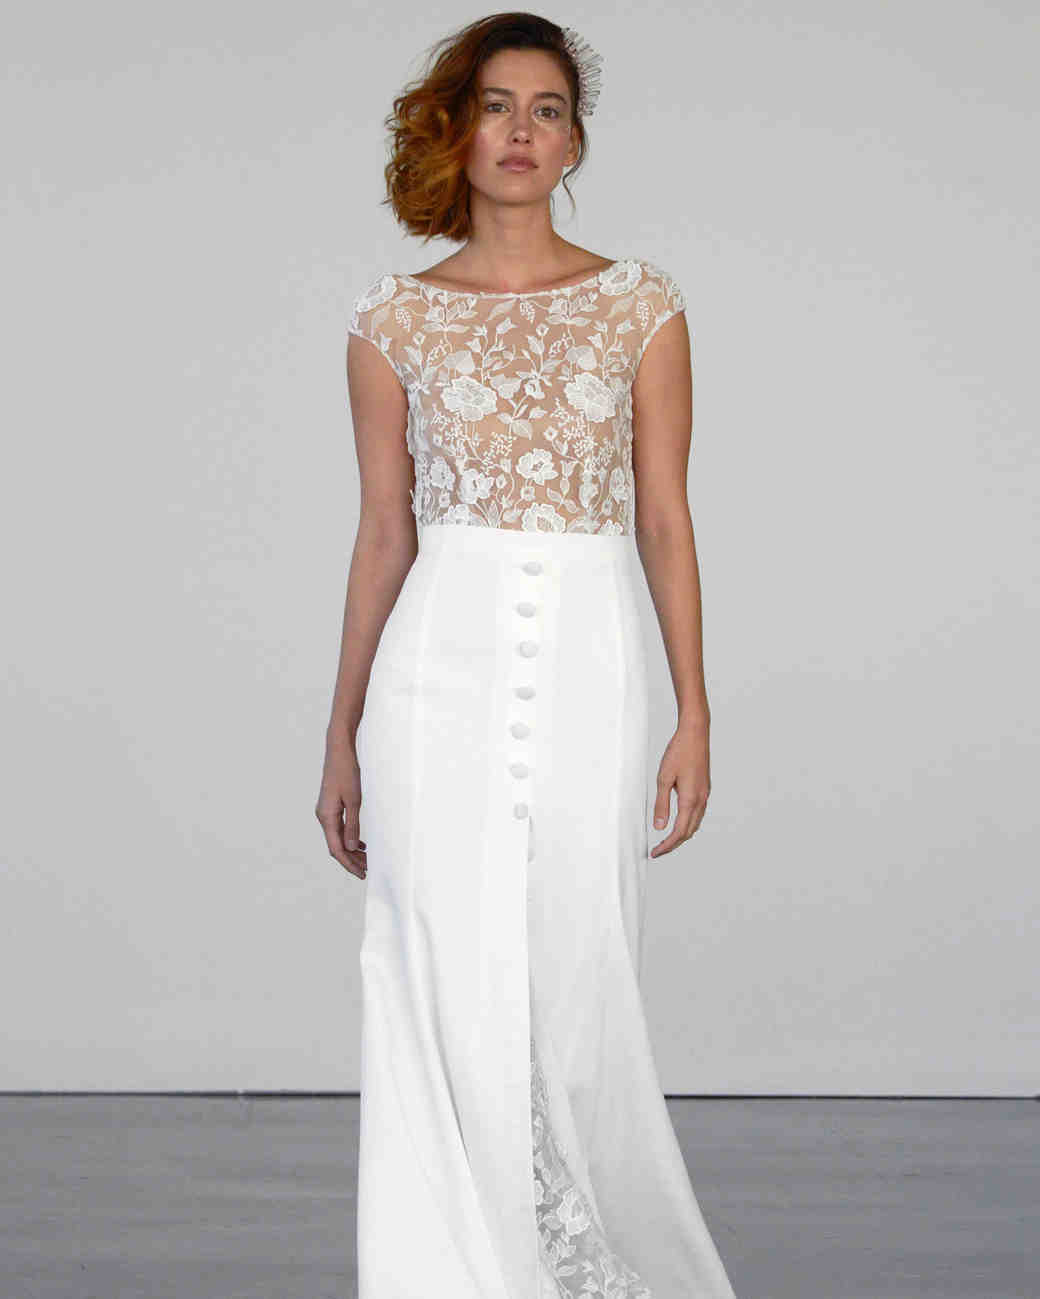 Rime Arodaky wedding dress - 8 Fall 2017